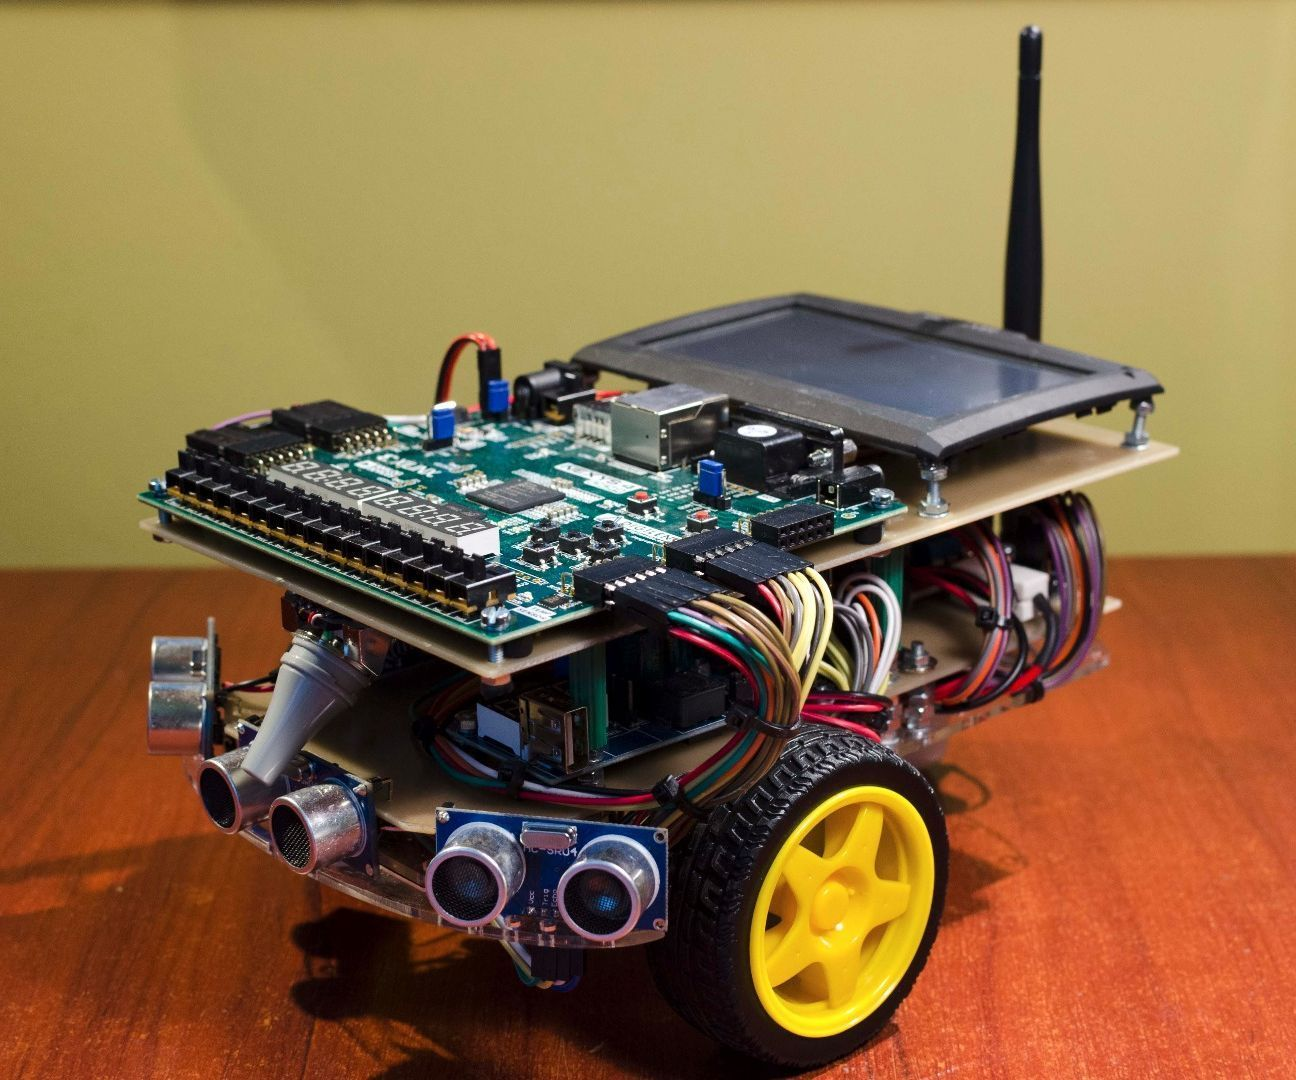 Fpga Powered Autonomous Search And Rescue Vehicles Projects To Try Ramps 14 Mega2560 R3 A4988 Optical Endstop 3d Printer Kit Alex